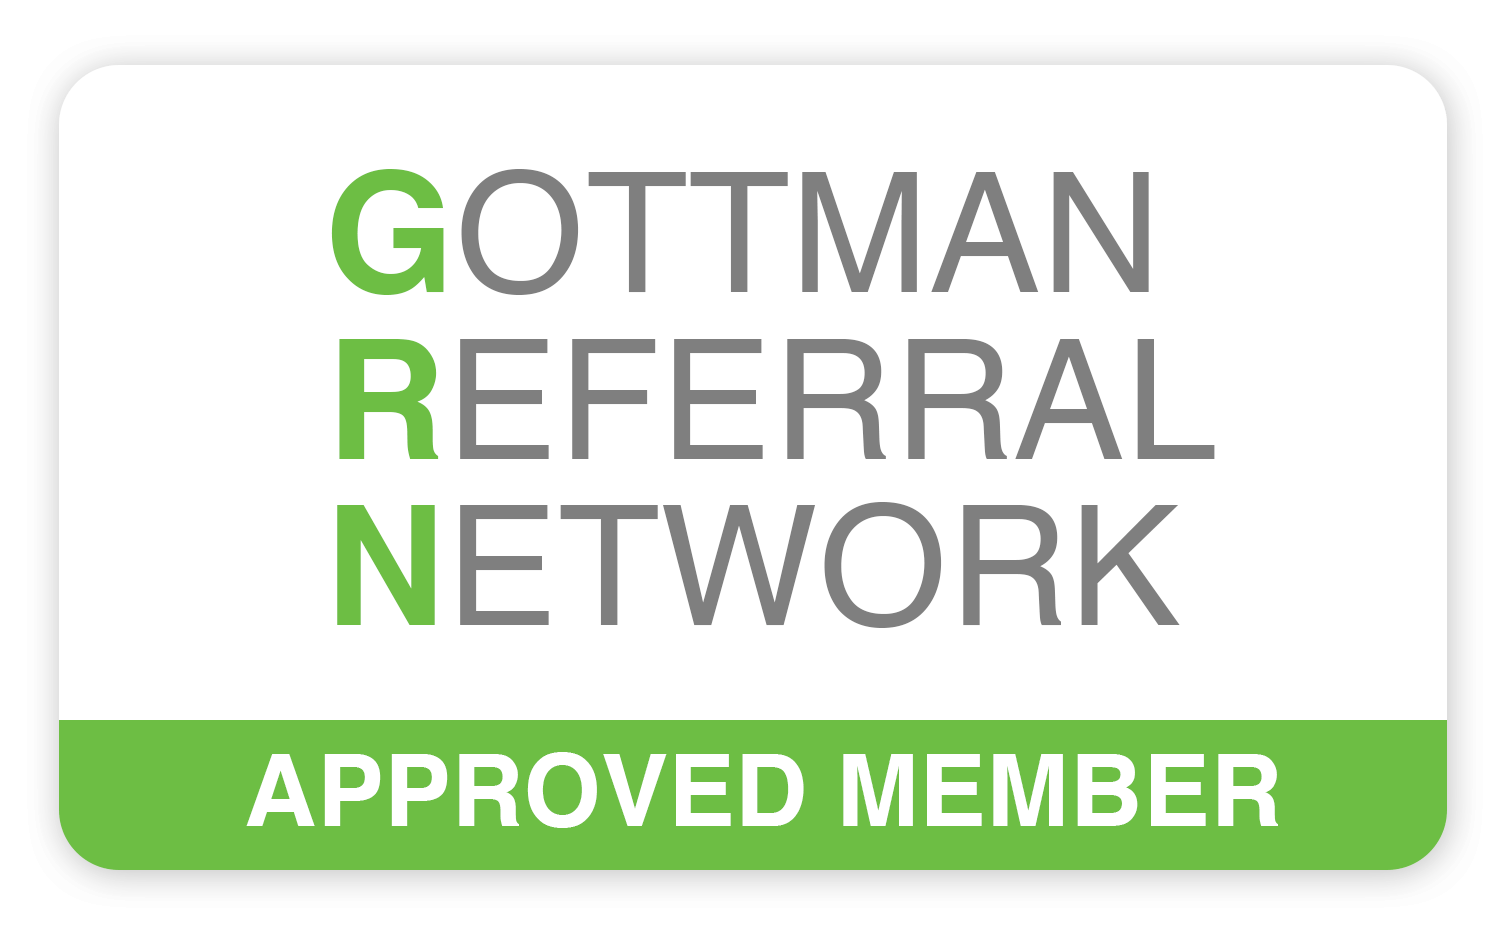 Chiara Simeone-DiFrancesco, PhD's profile on the Gottman Referral Network